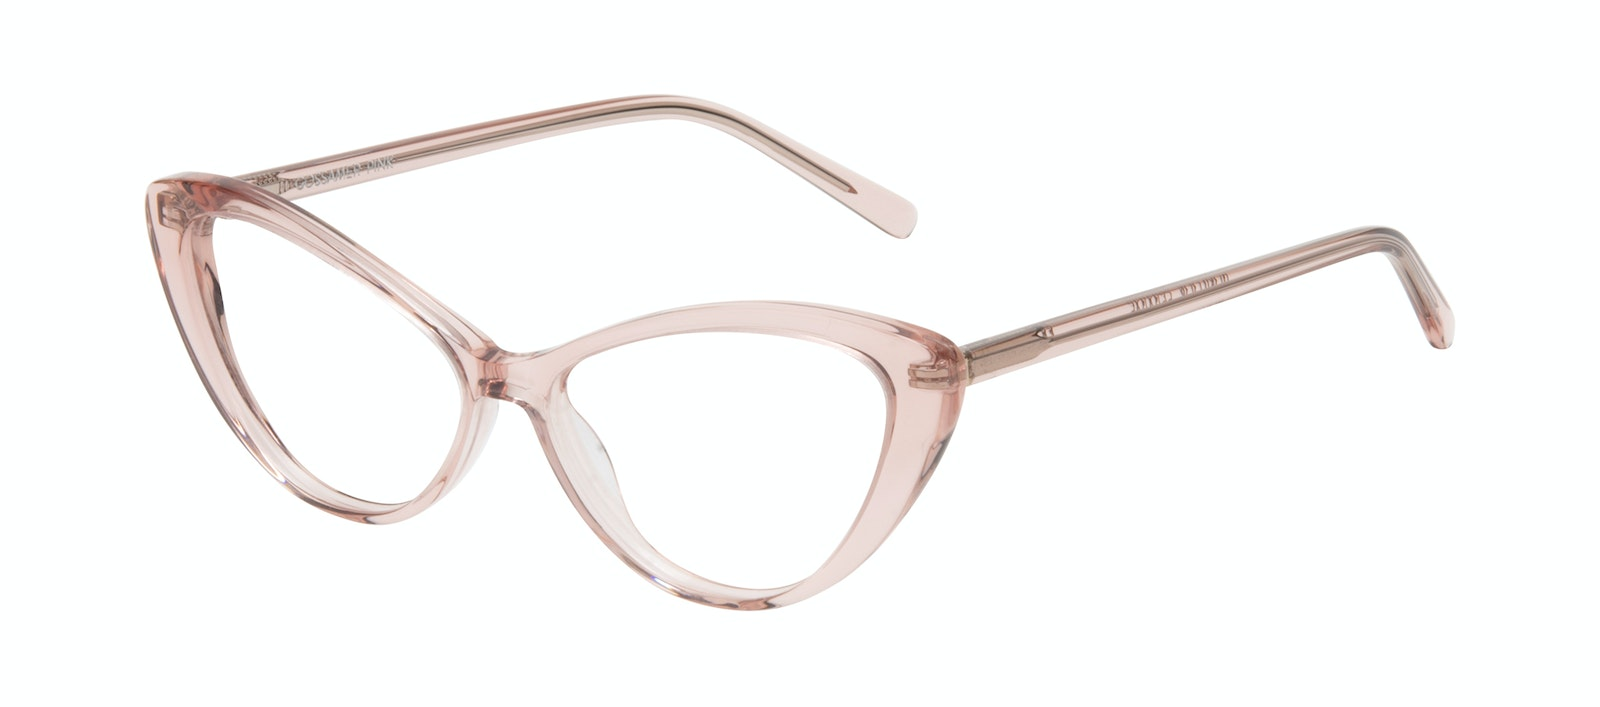 Affordable Fashion Glasses Cat Eye Eyeglasses Women Gossamer Pink Tilt